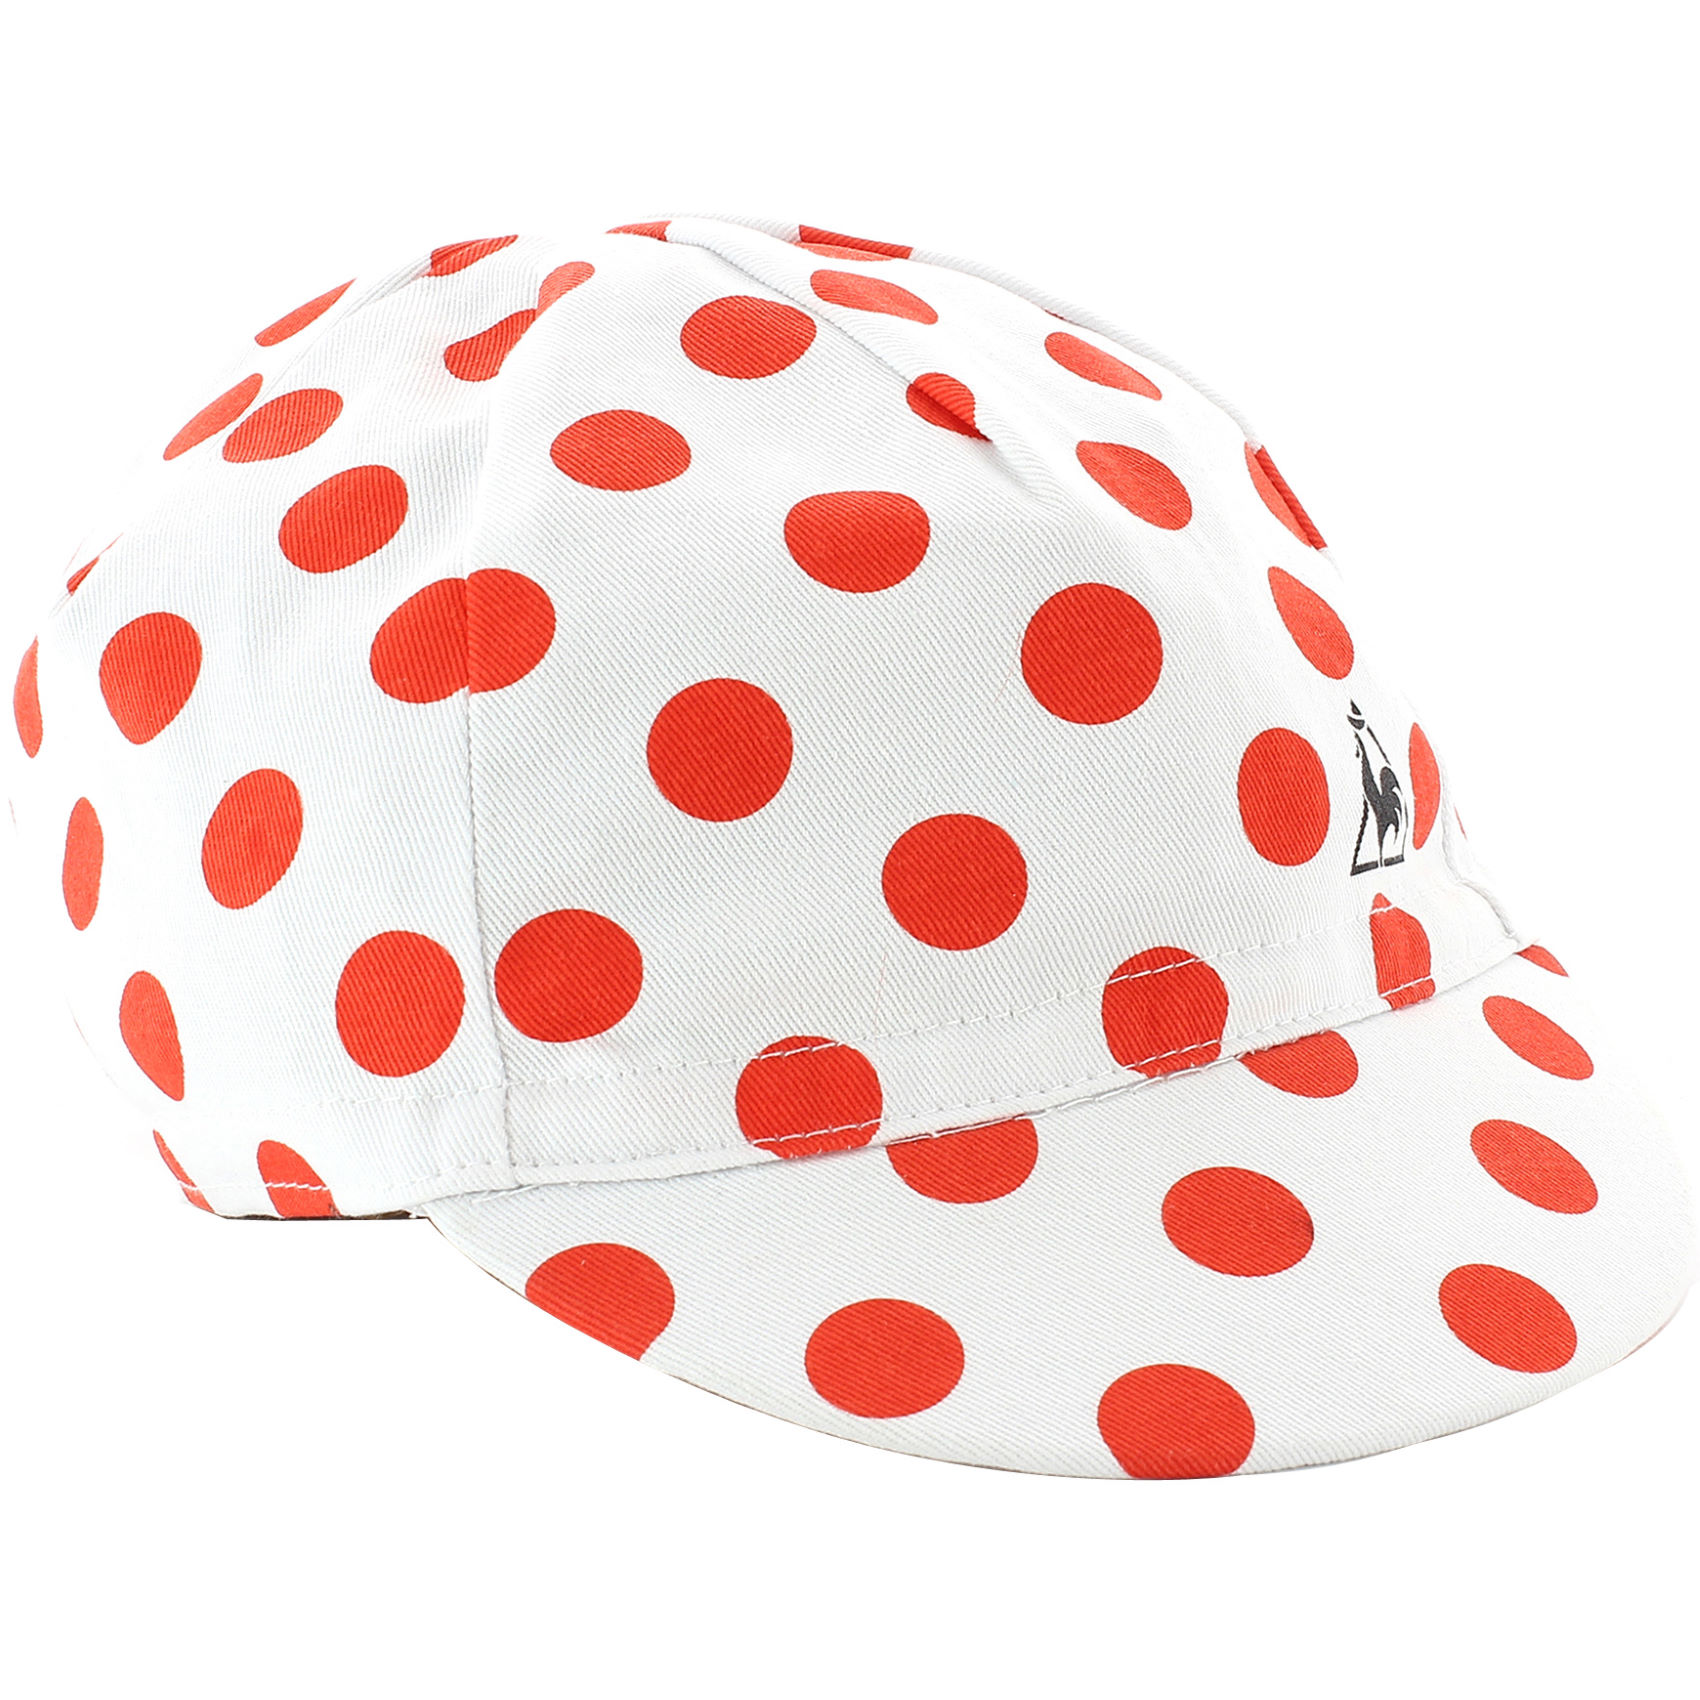 Wiggle Le Coq Sportif Tour De France Cycling Cap 2013